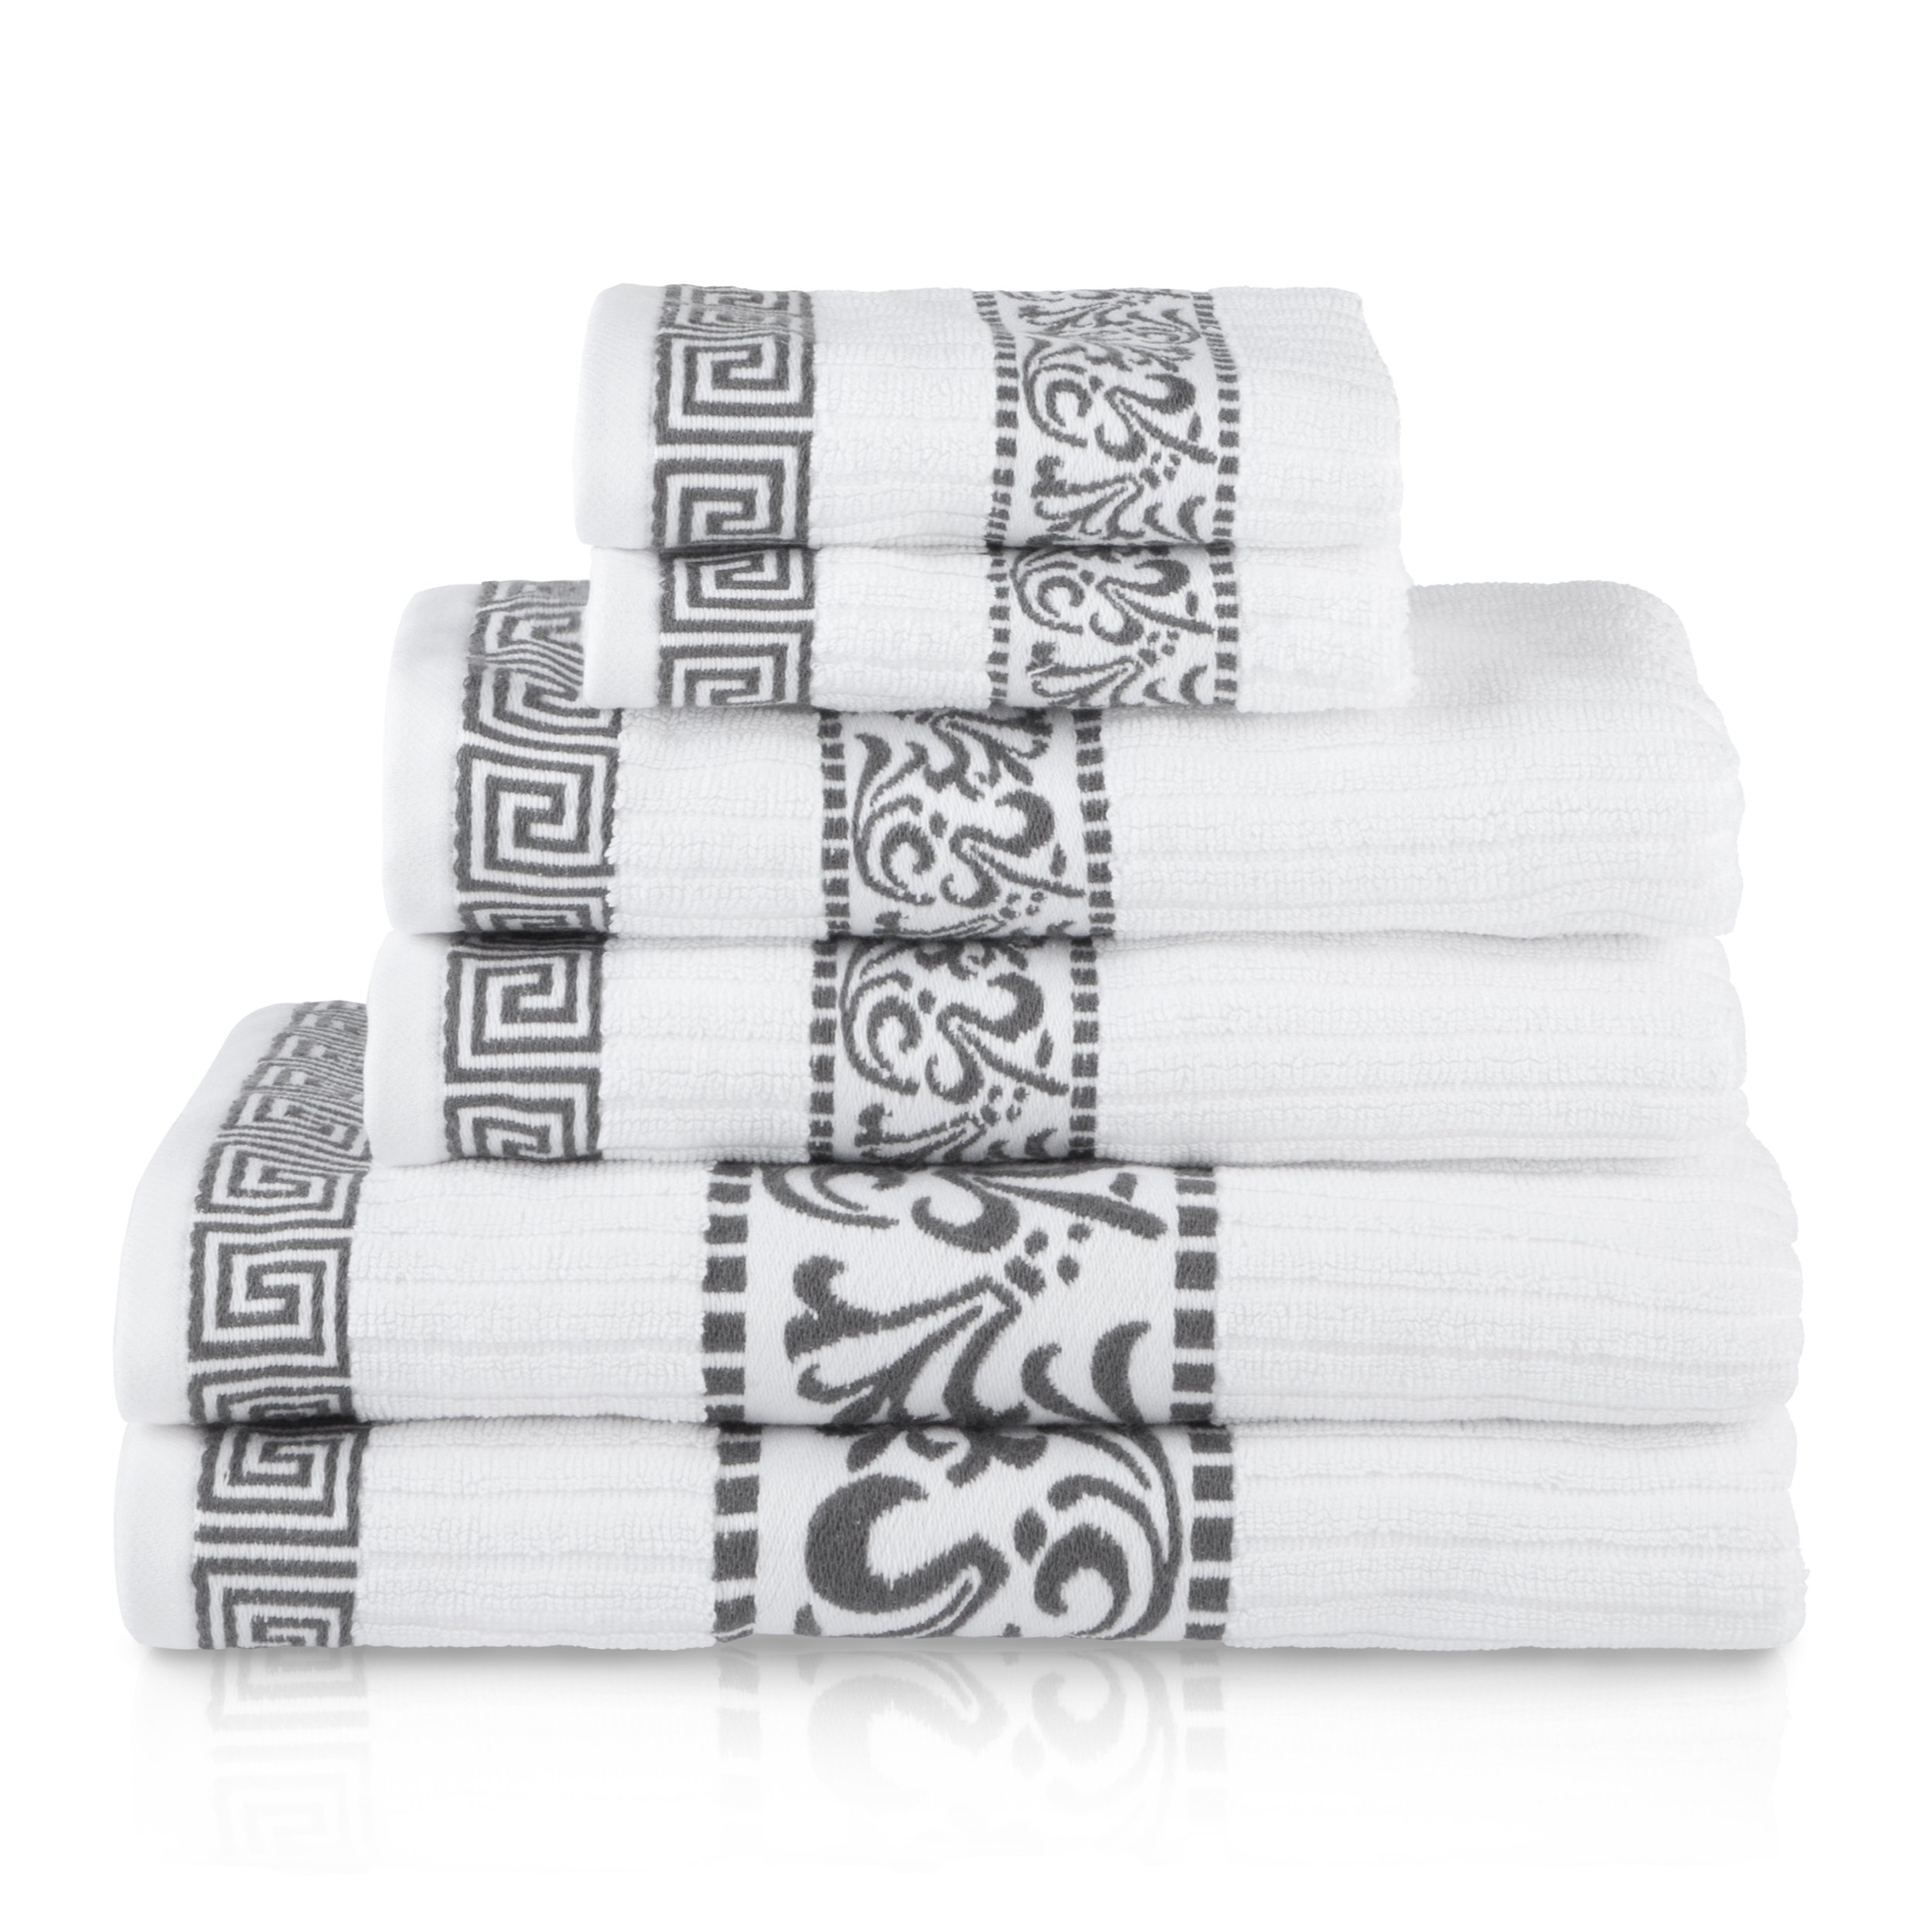 Superior Athens 100% Cotton, Soft, Extremely Absorbent, Beautiful 6 Piece Towel Set, Grey